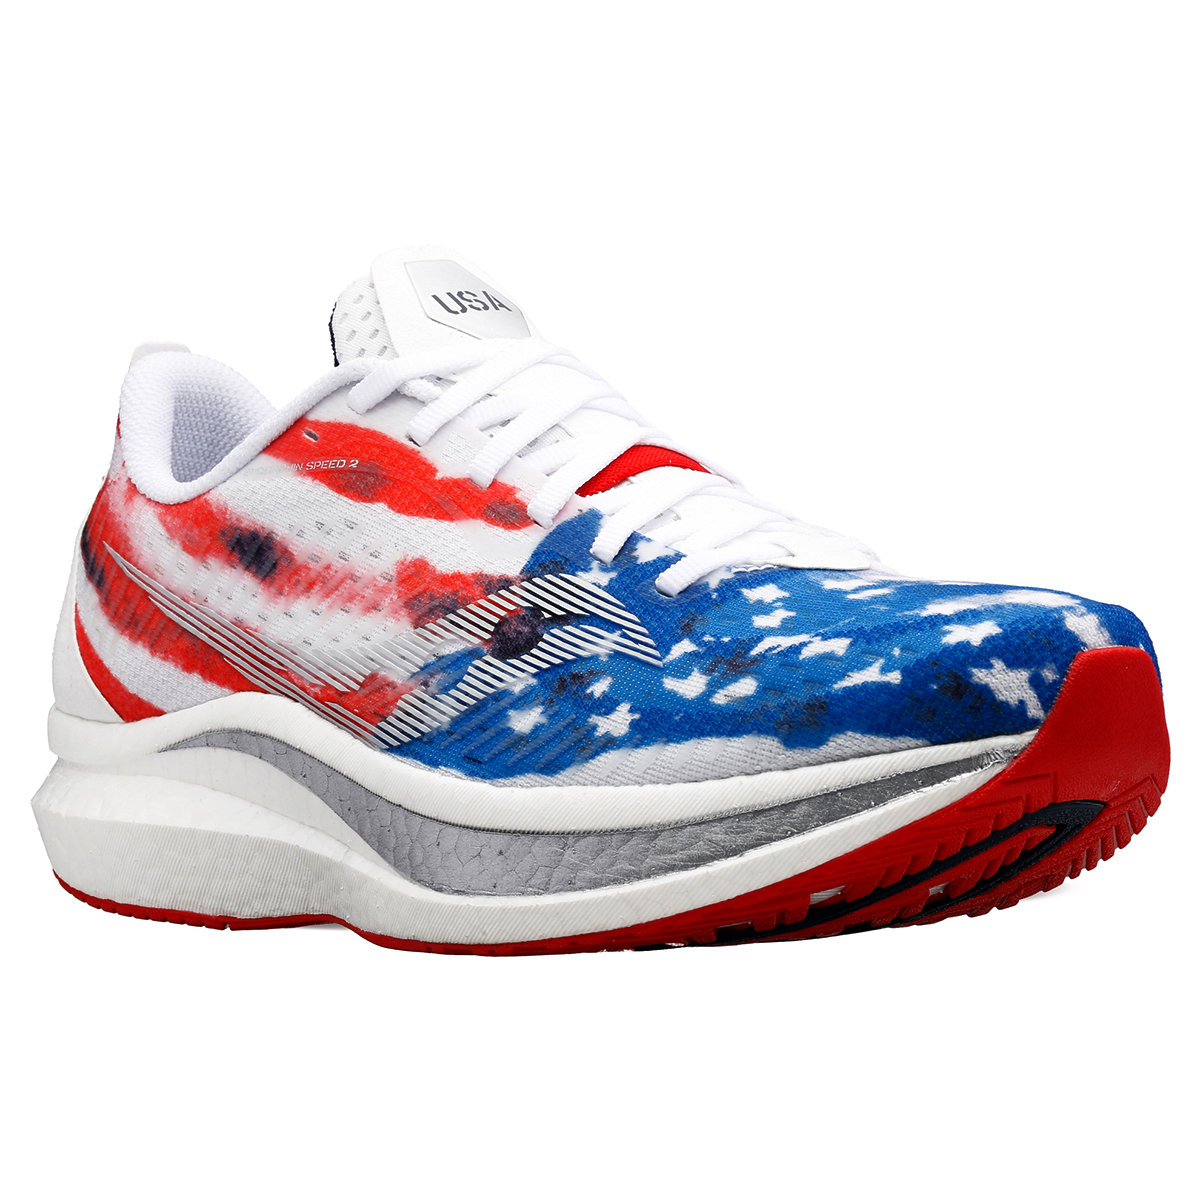 Men's Saucony Endorphin Speed 2 Running Shoe - Color: Red/White/Blue - Size: 7 - Width: Regular, Red/White/Blue, large, image 2